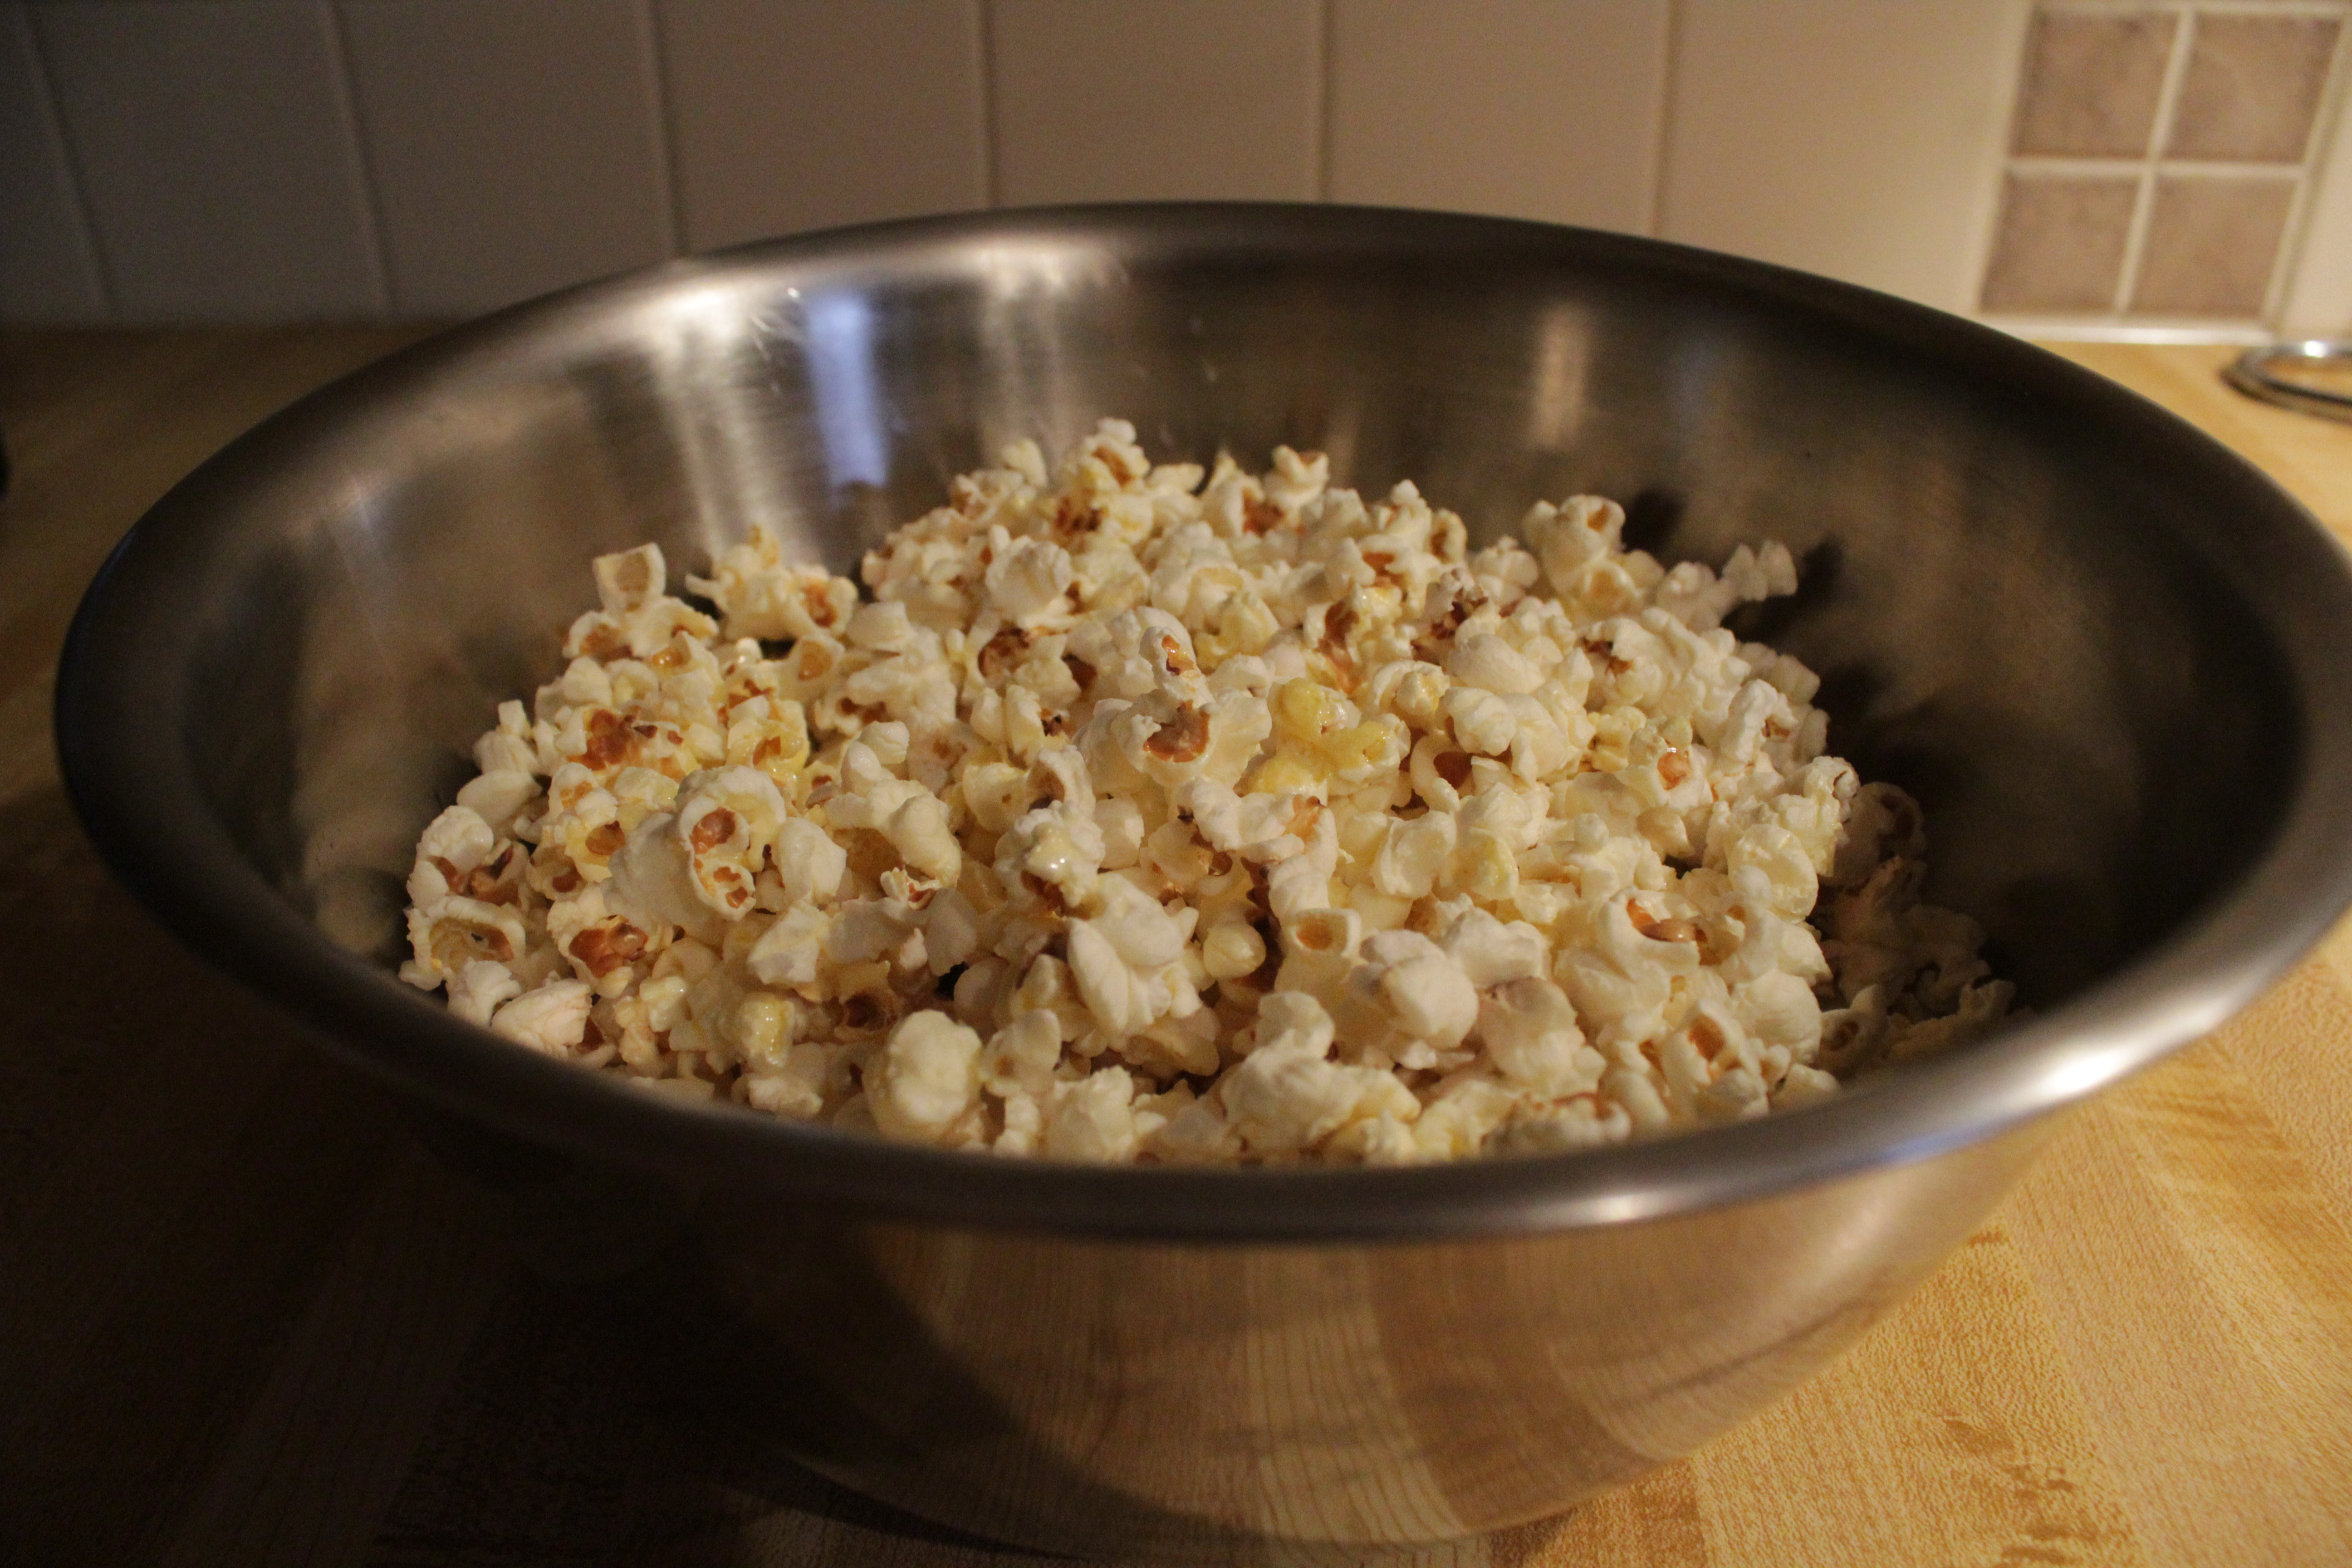 How To Make Pop Corn From Corn At Home